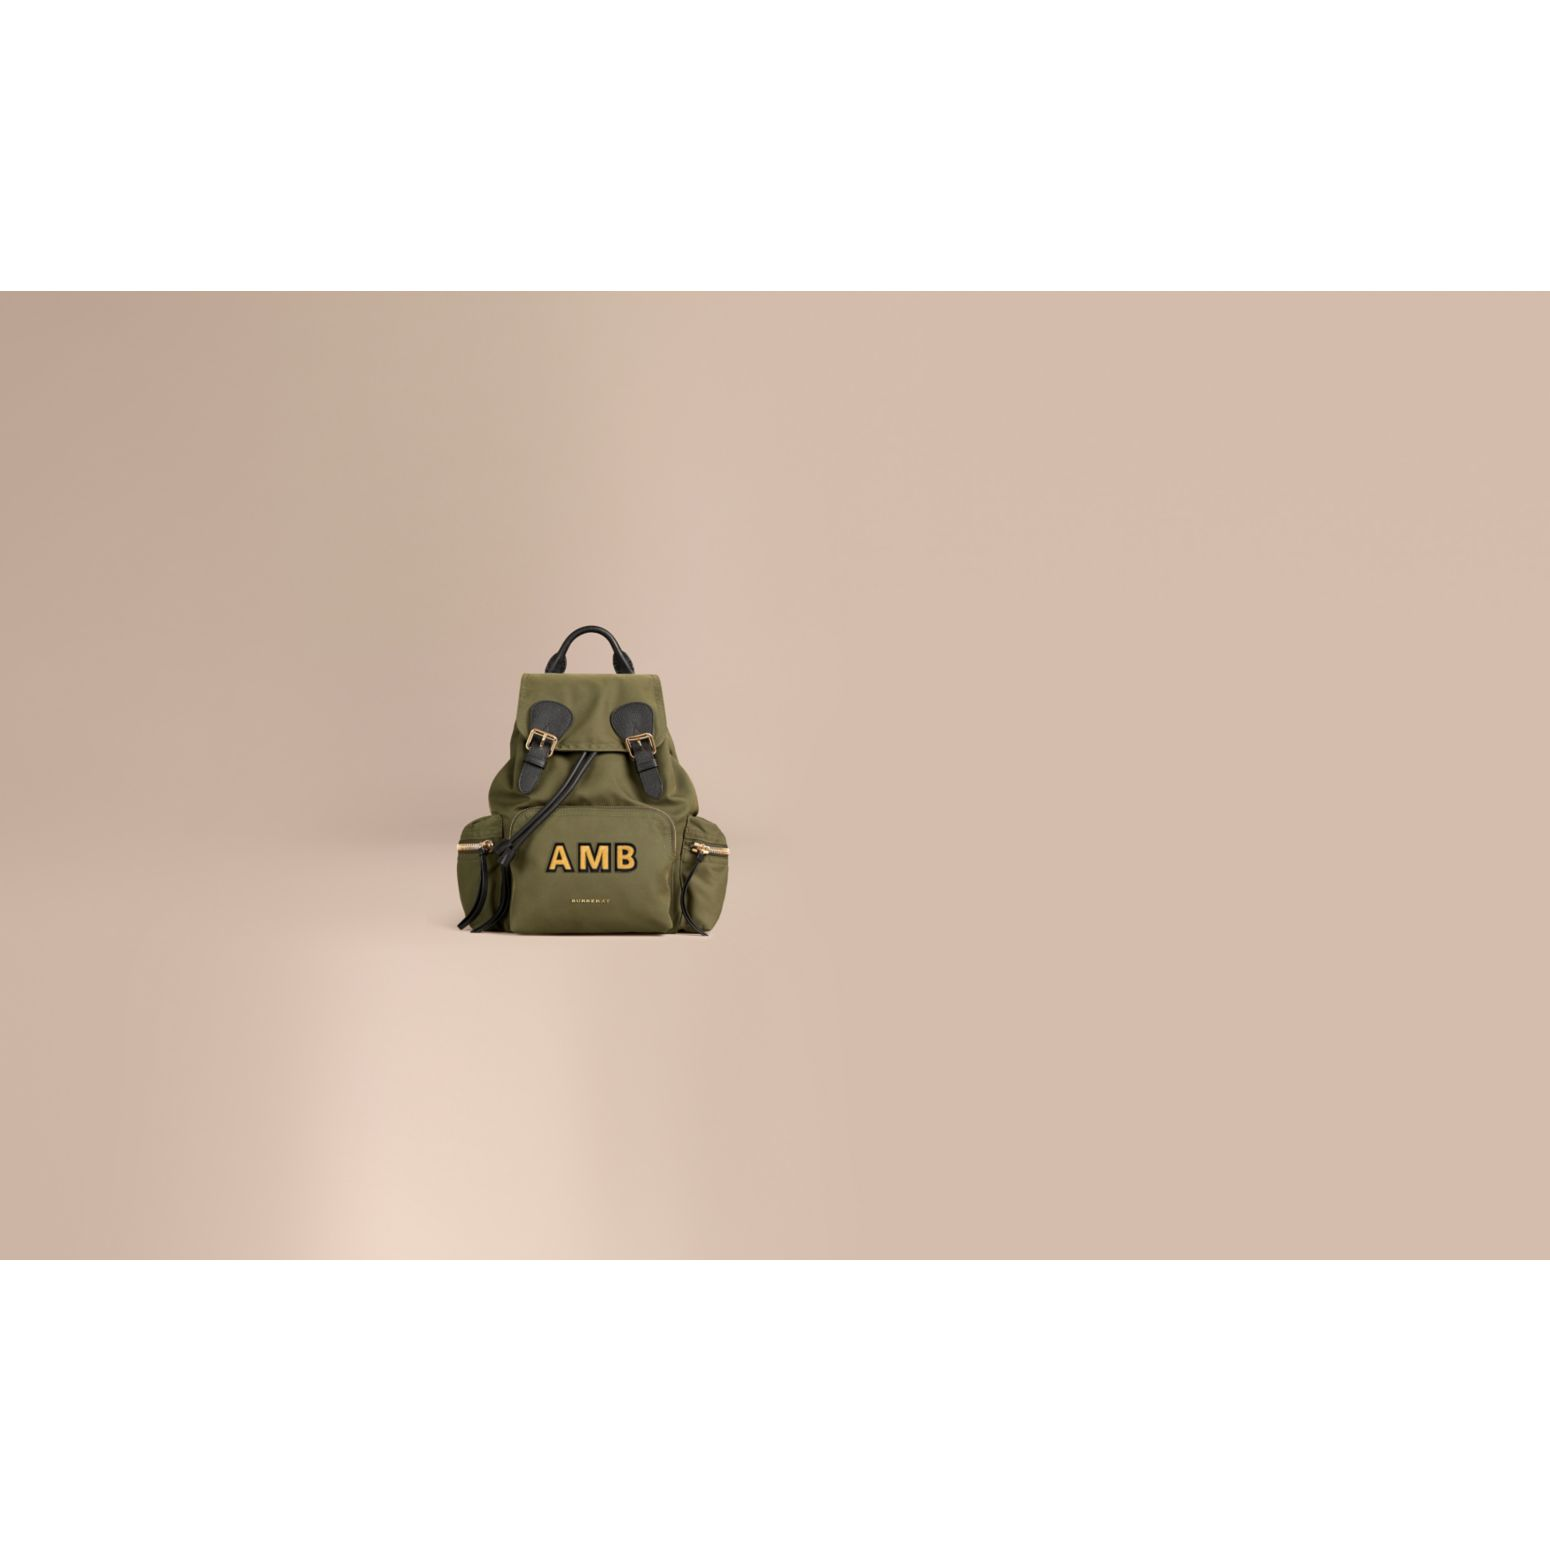 Zaino The Rucksack medio in nylon tecnico e pelle (Verde Tela) - Donna | Burberry - immagine della galleria 2